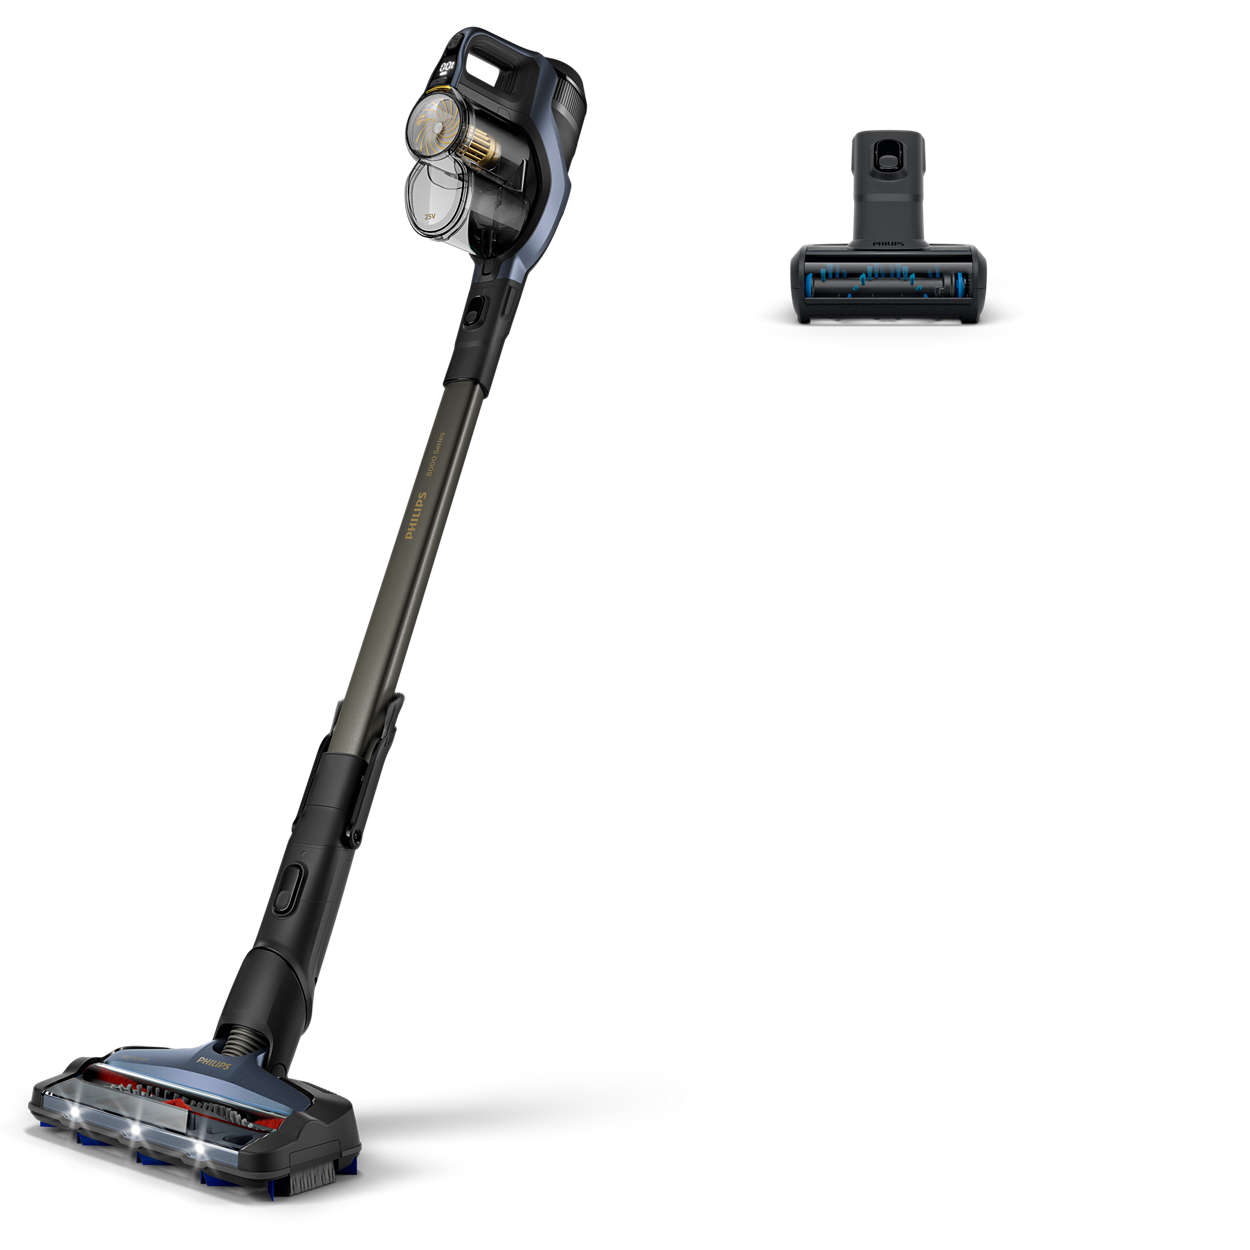 The compact Philips Vacuum Cordless cleaner saves both space and energy with its ergonomic design Source: Lazada.com